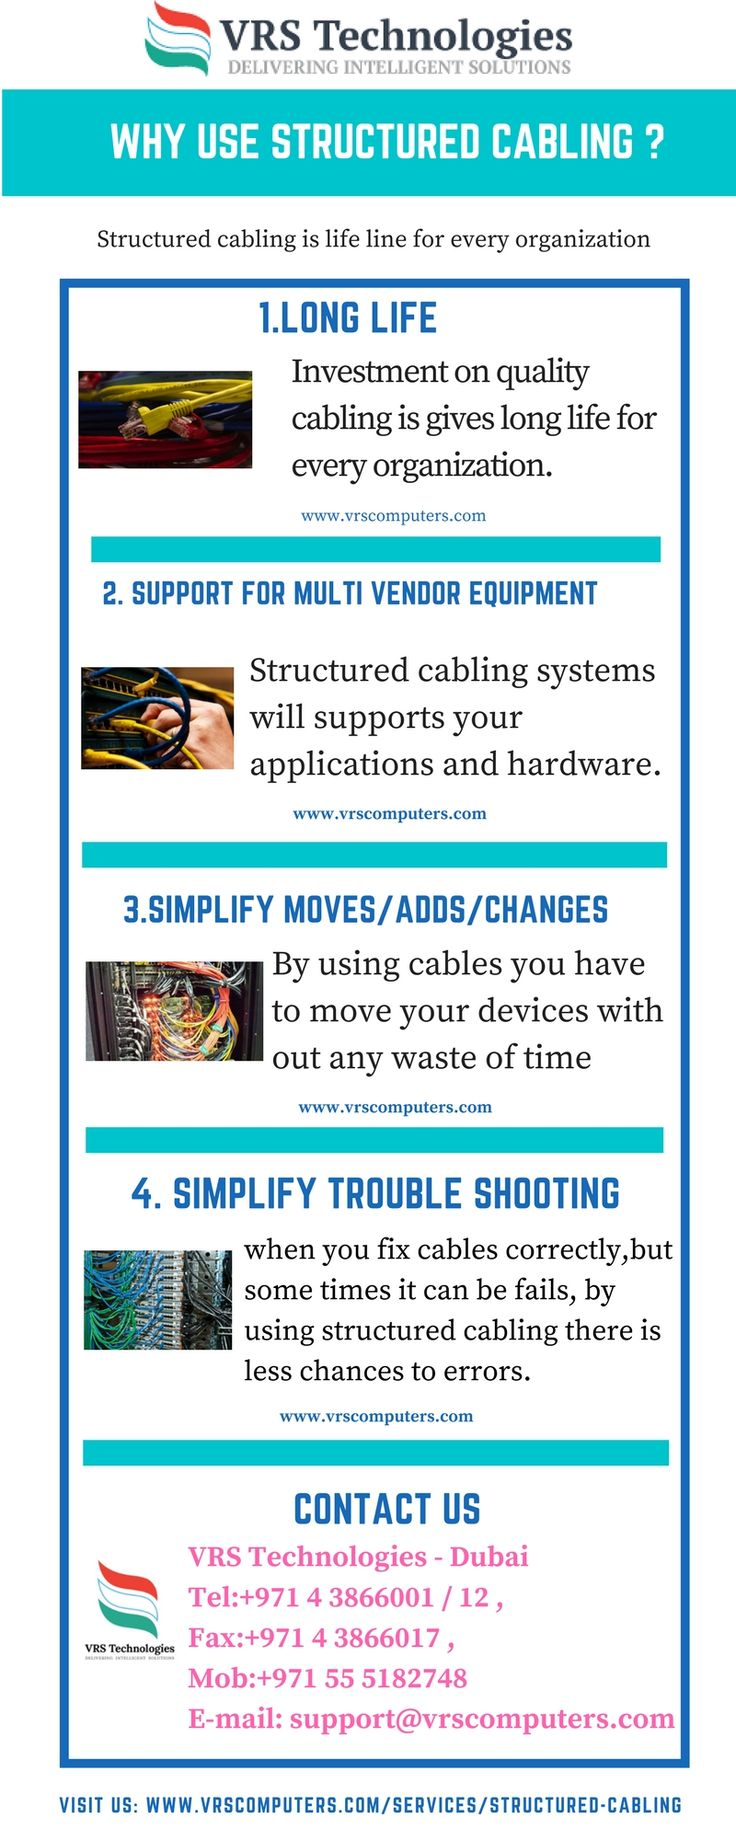 VRS Technologies offers structured cabling services in Dubai,we give quality cabling services in Dubai.Call us at 00971-55-5182748